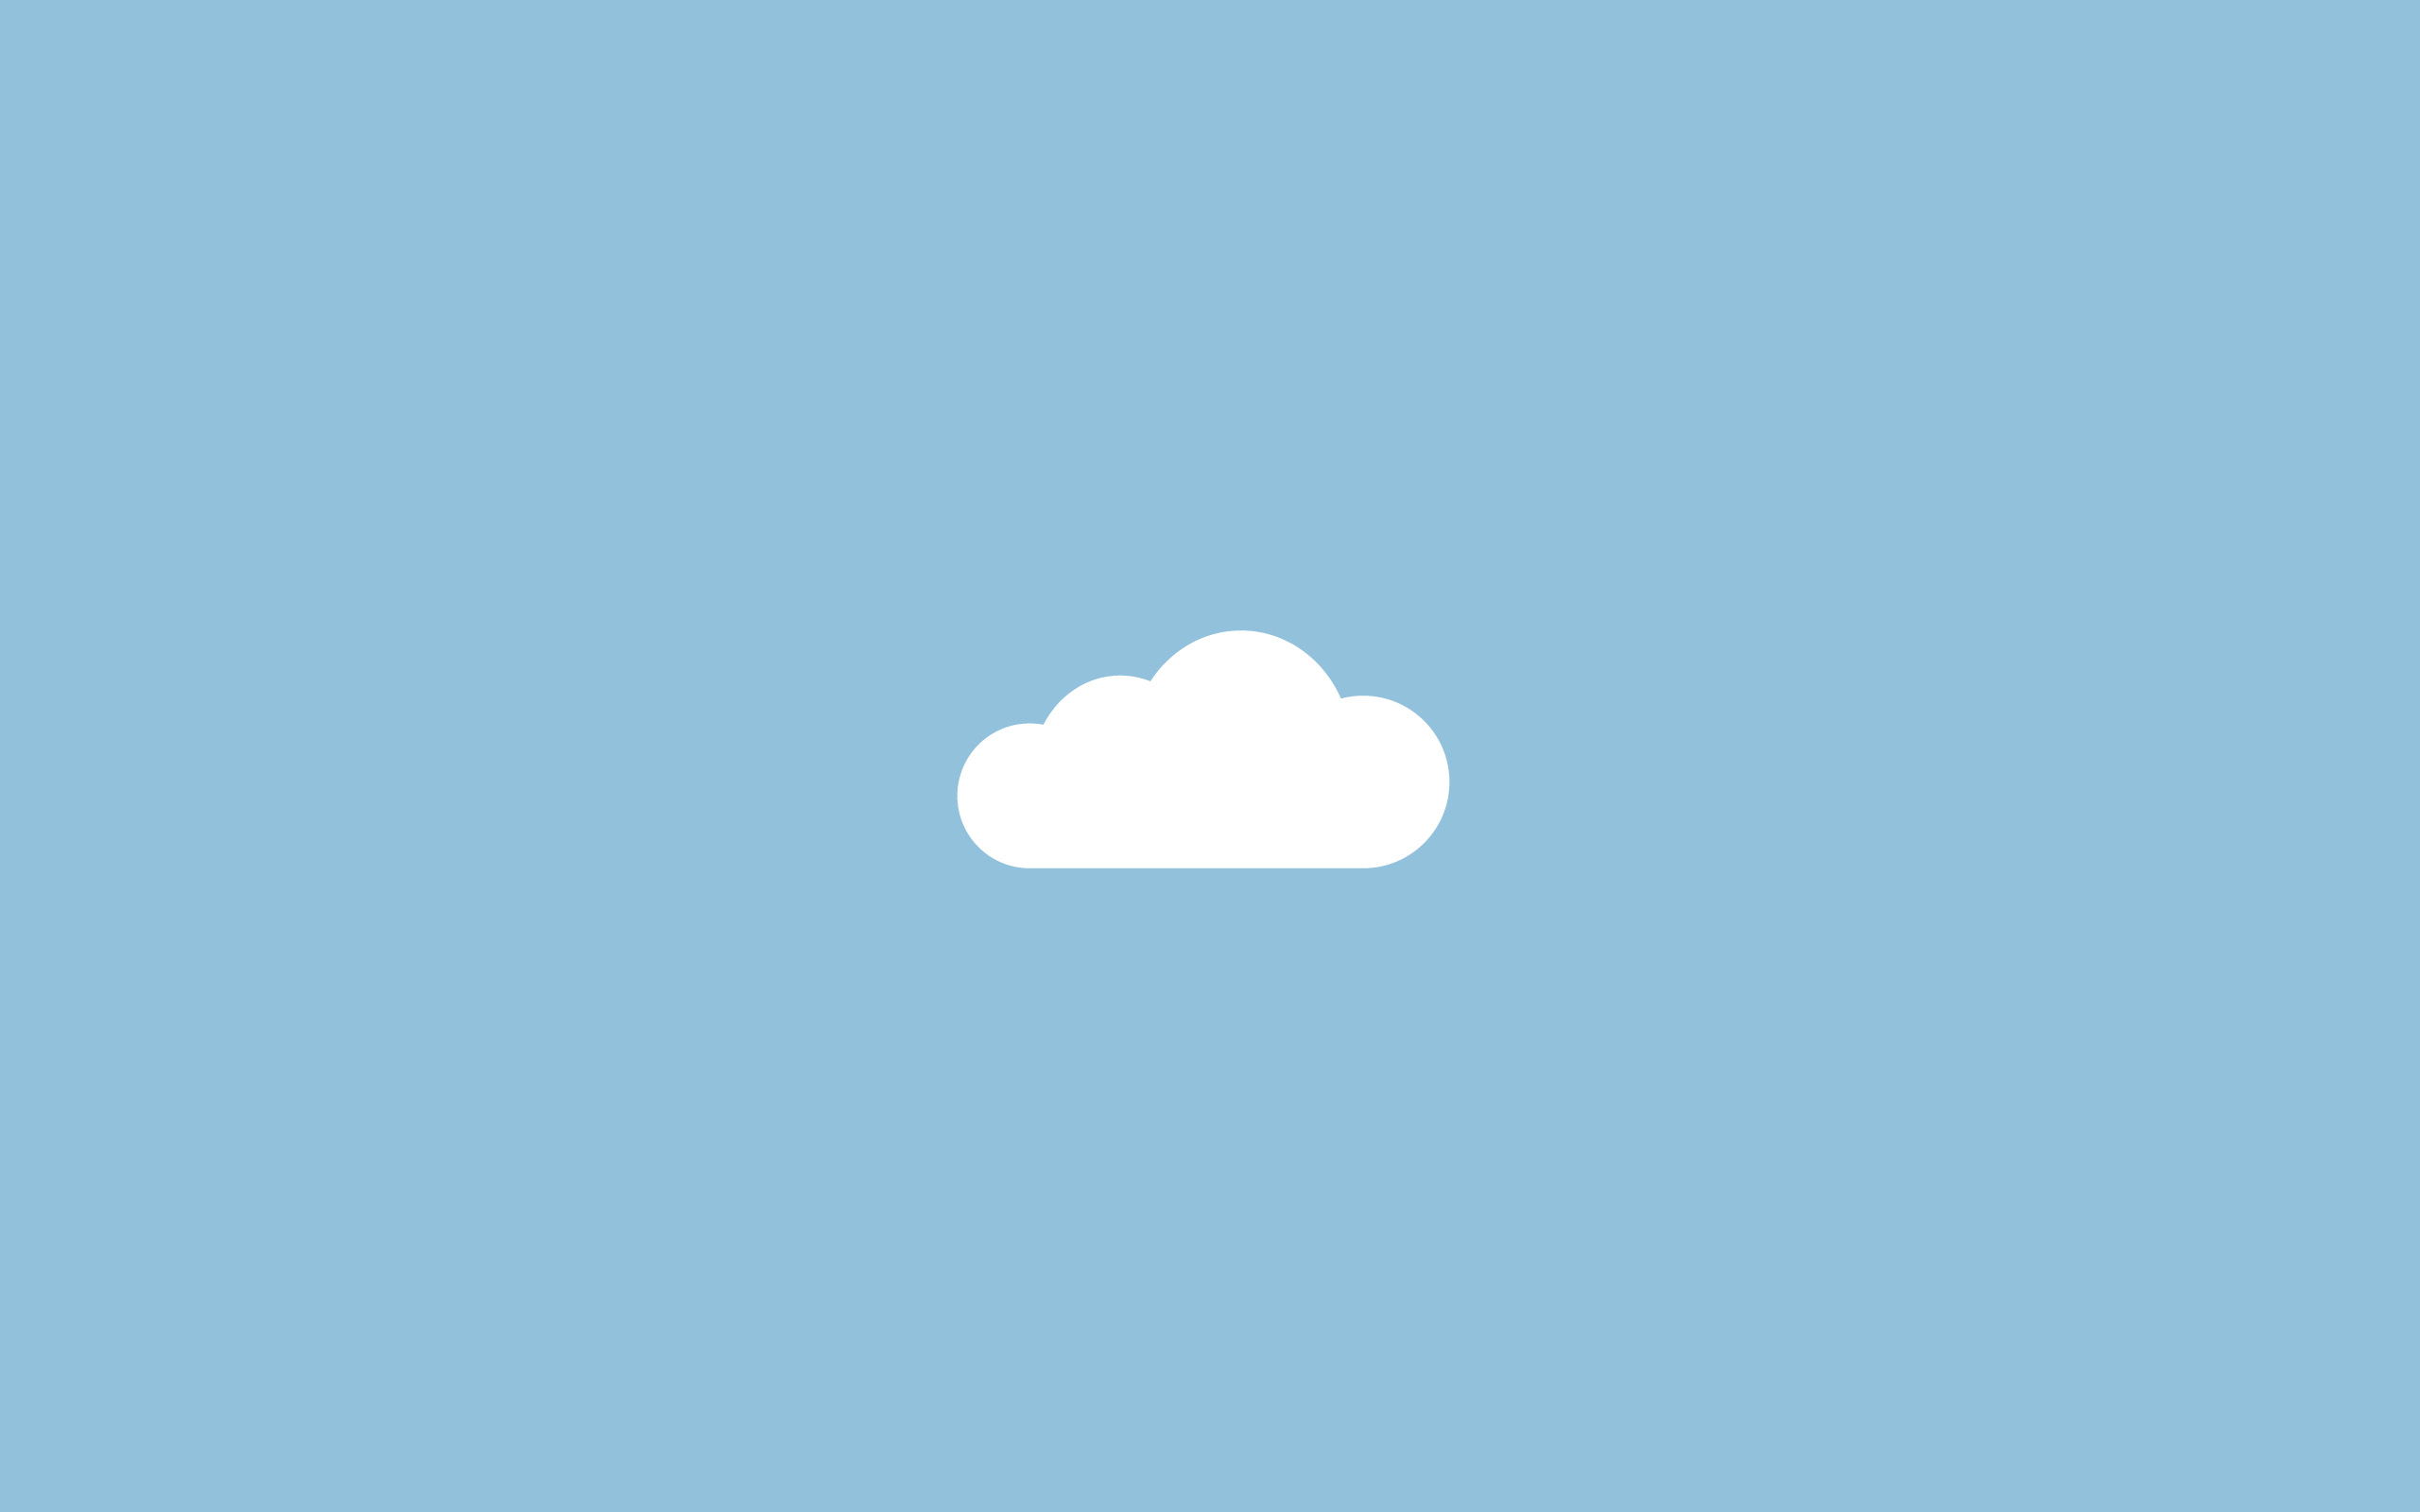 cloudy day simple free desktop wallpapers for widescreen hd and